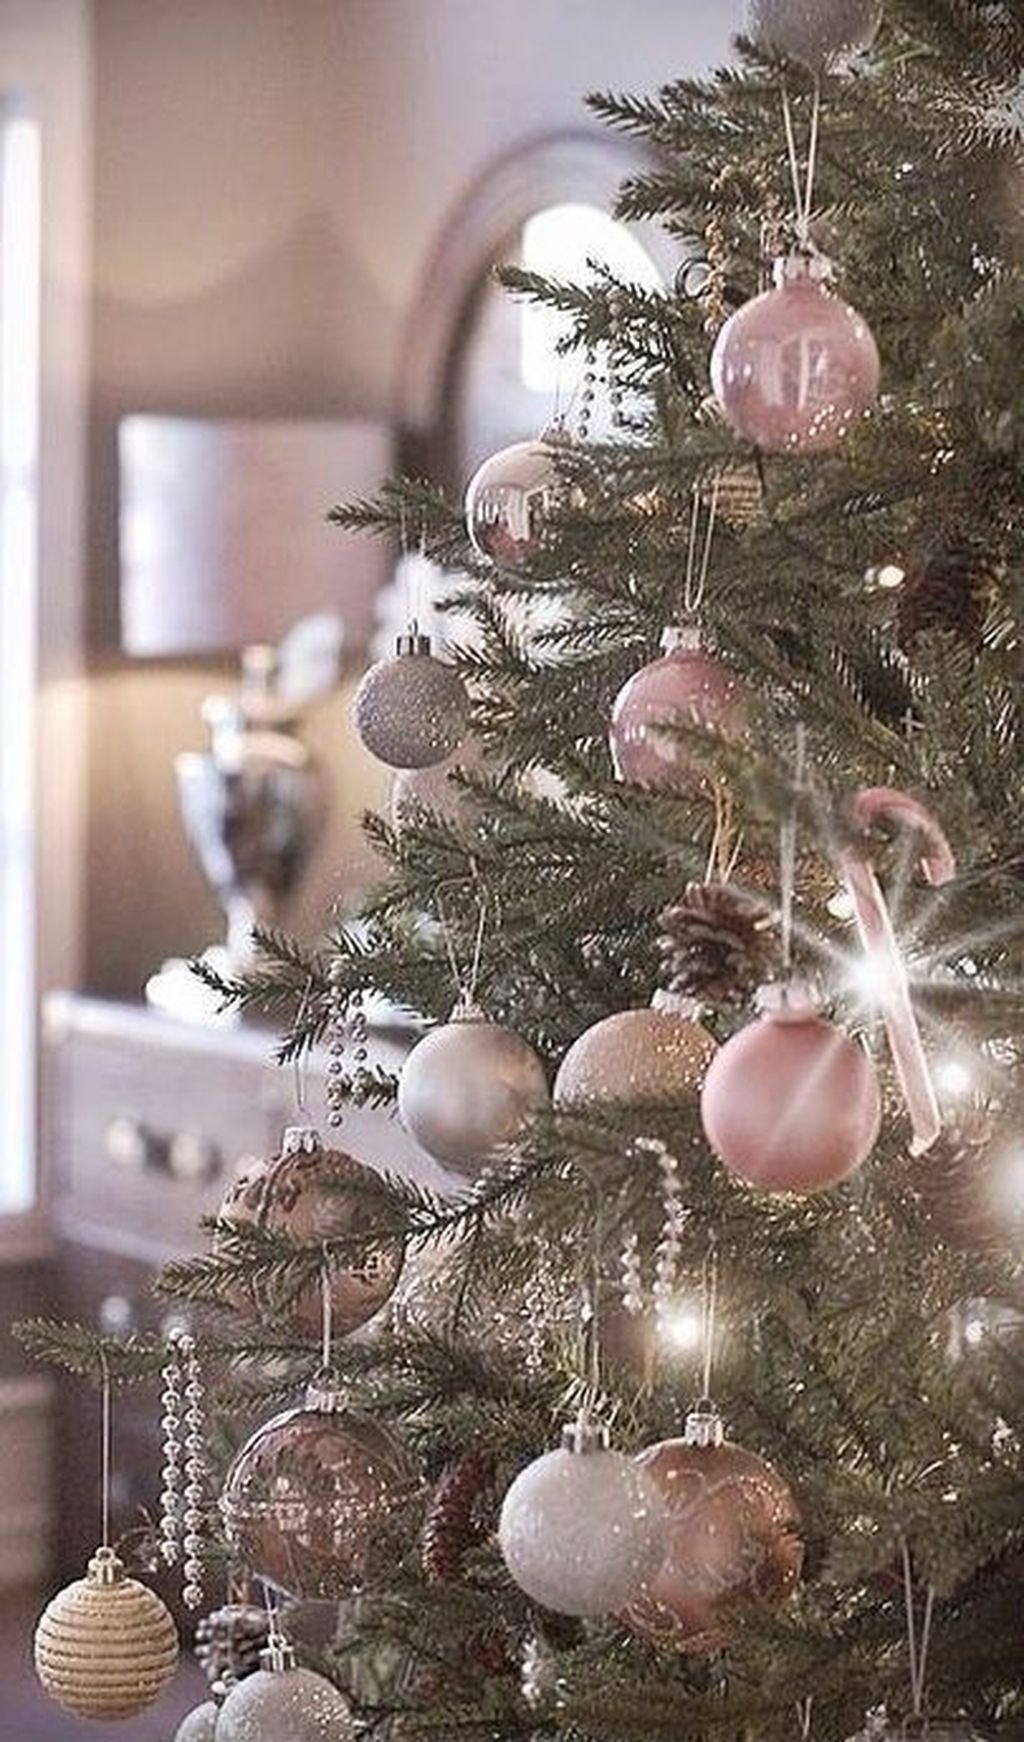 Pink Christmas Tree Decorations Ideas.Cute And Adorable Pink Christmas Tree Decoration Ideas 30